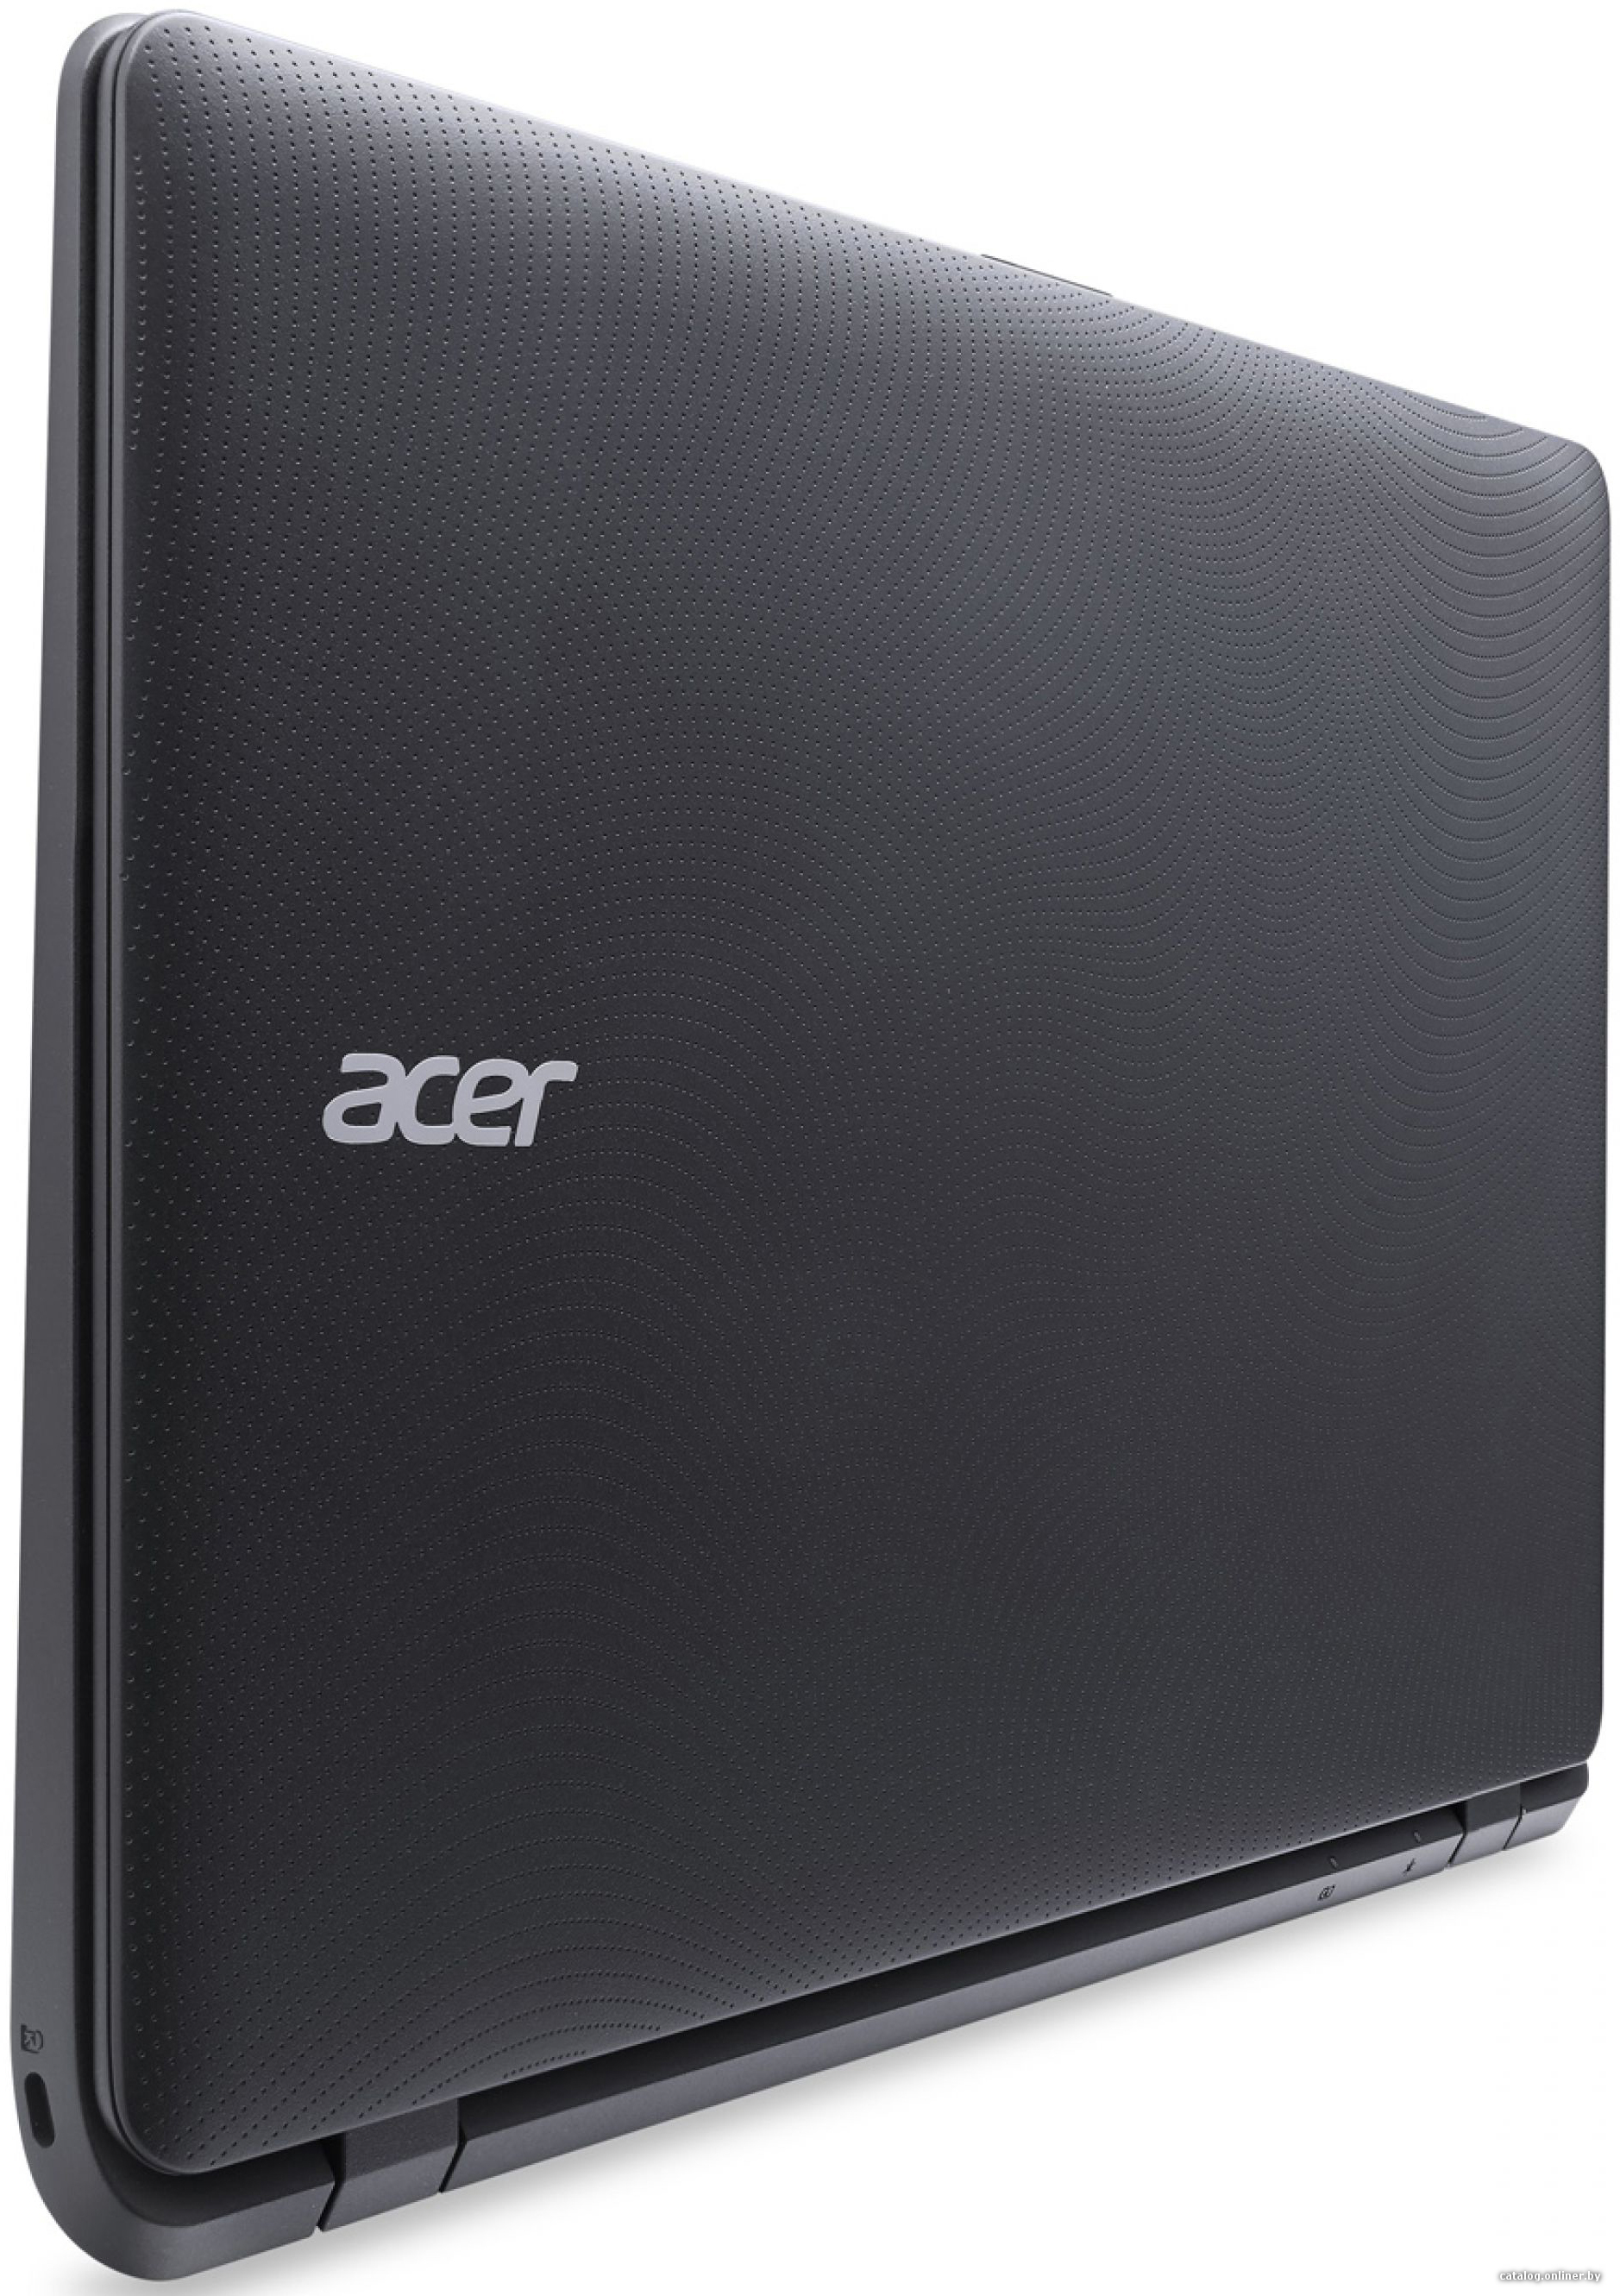 ACER TRAVELMATE B117-MP INTEL USB 3.0 DRIVER FOR WINDOWS 10